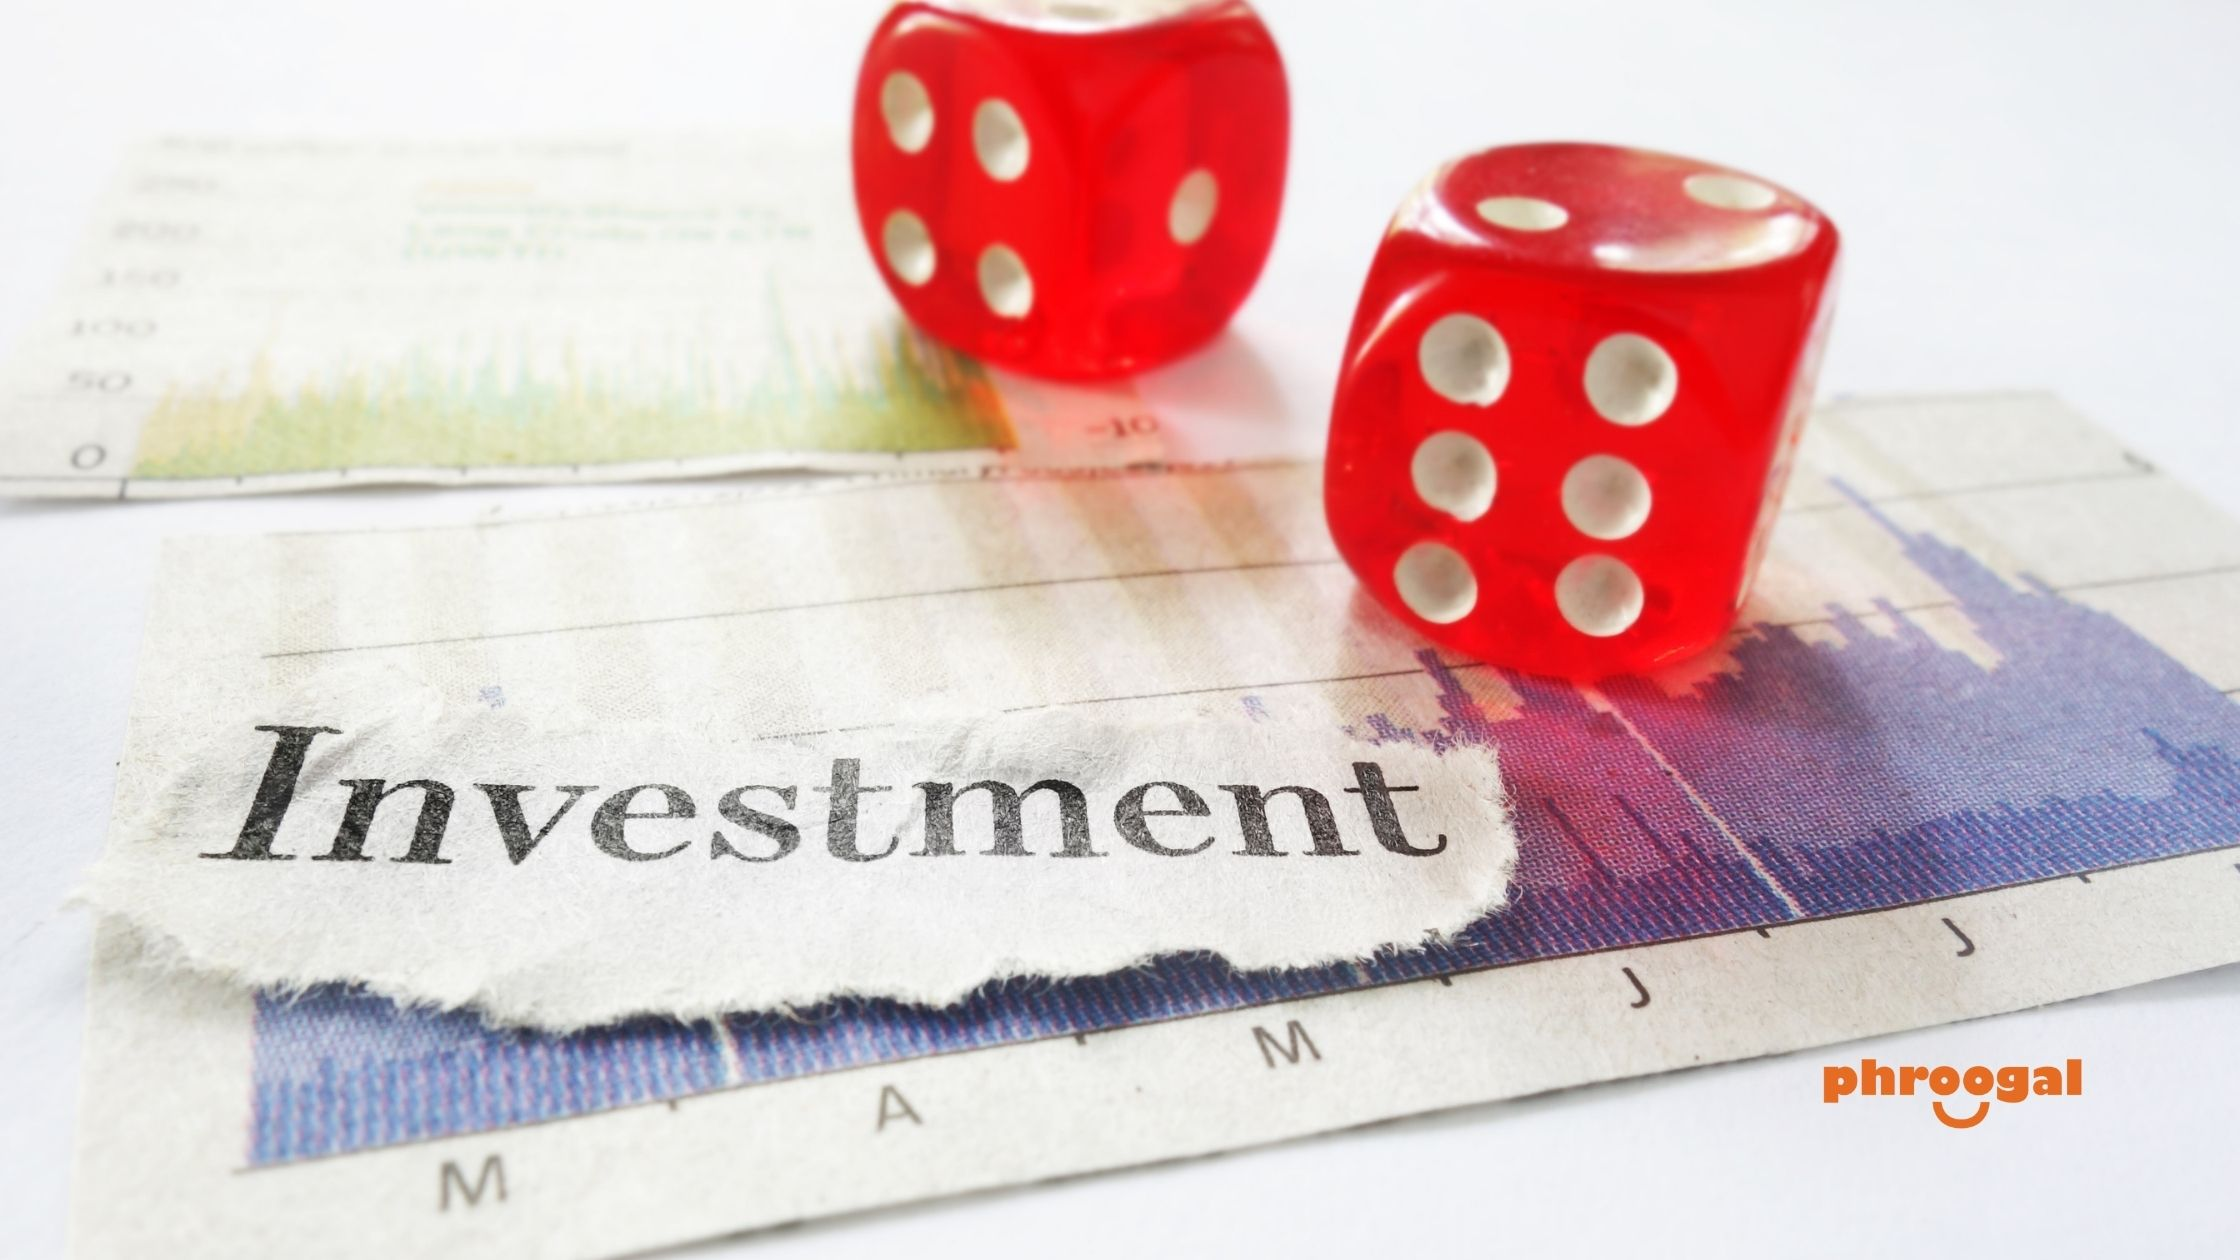 Investing is risky advice phroogal